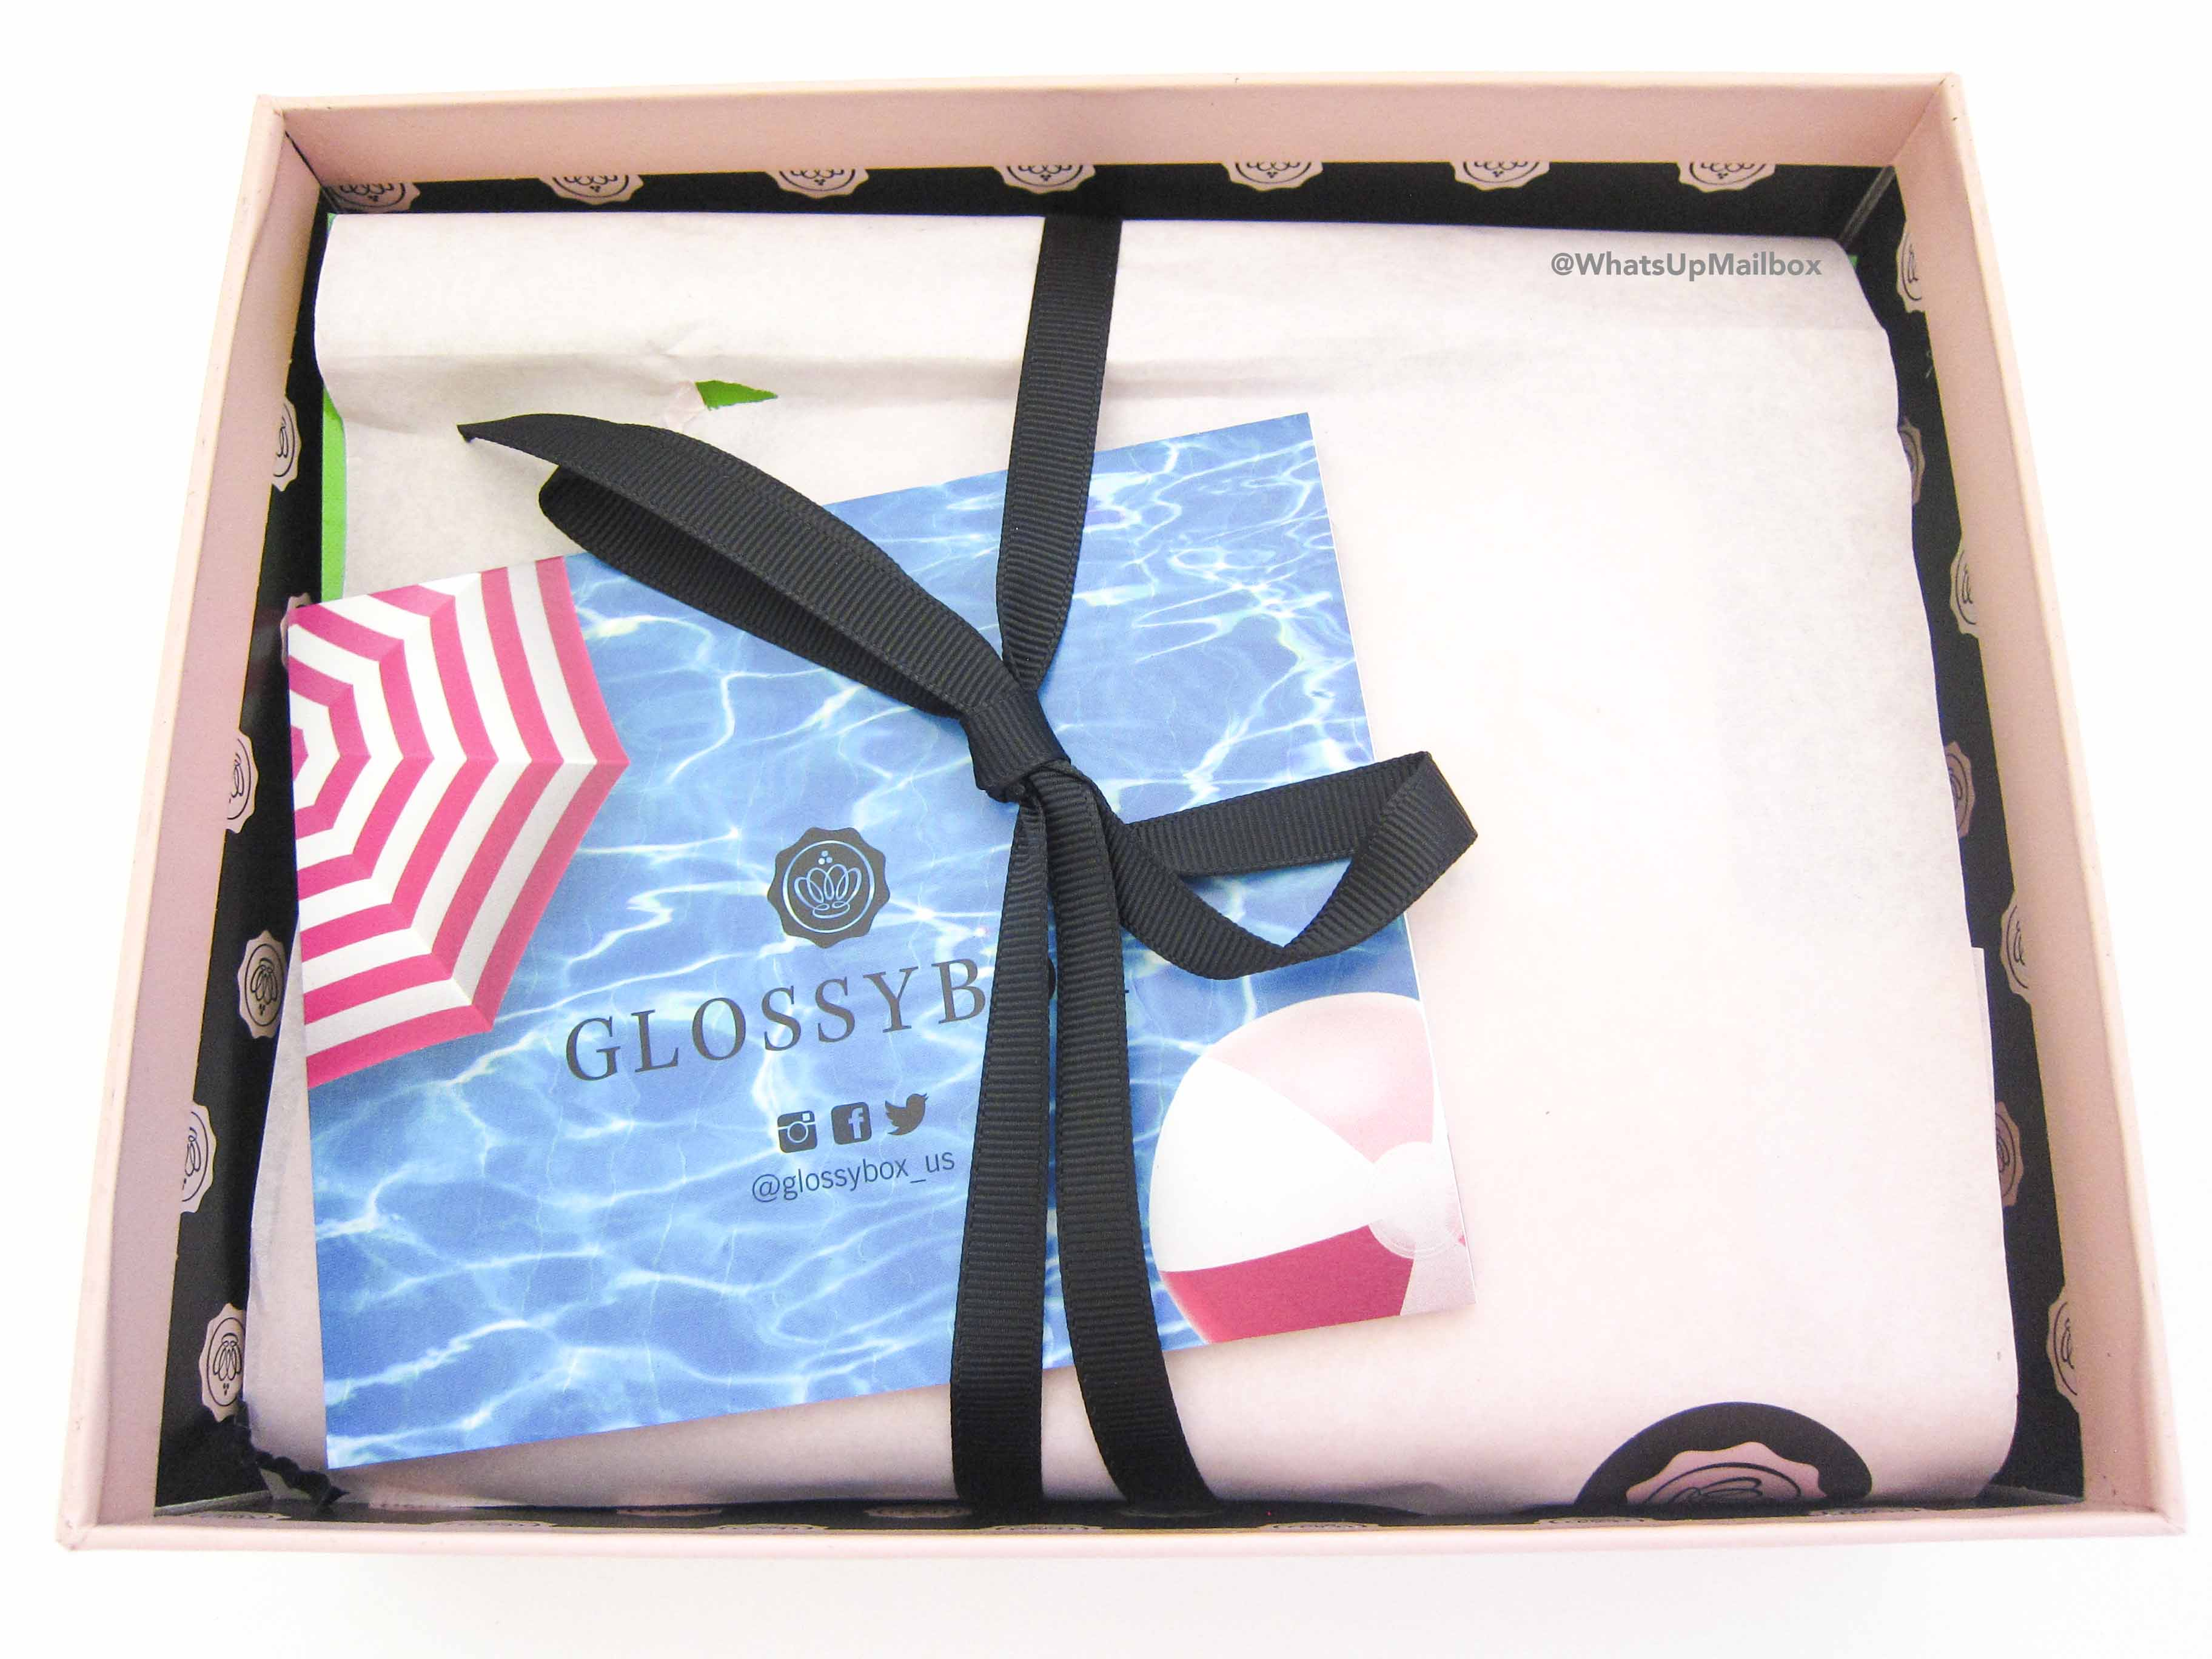 Glossybox July 2016 Open Box